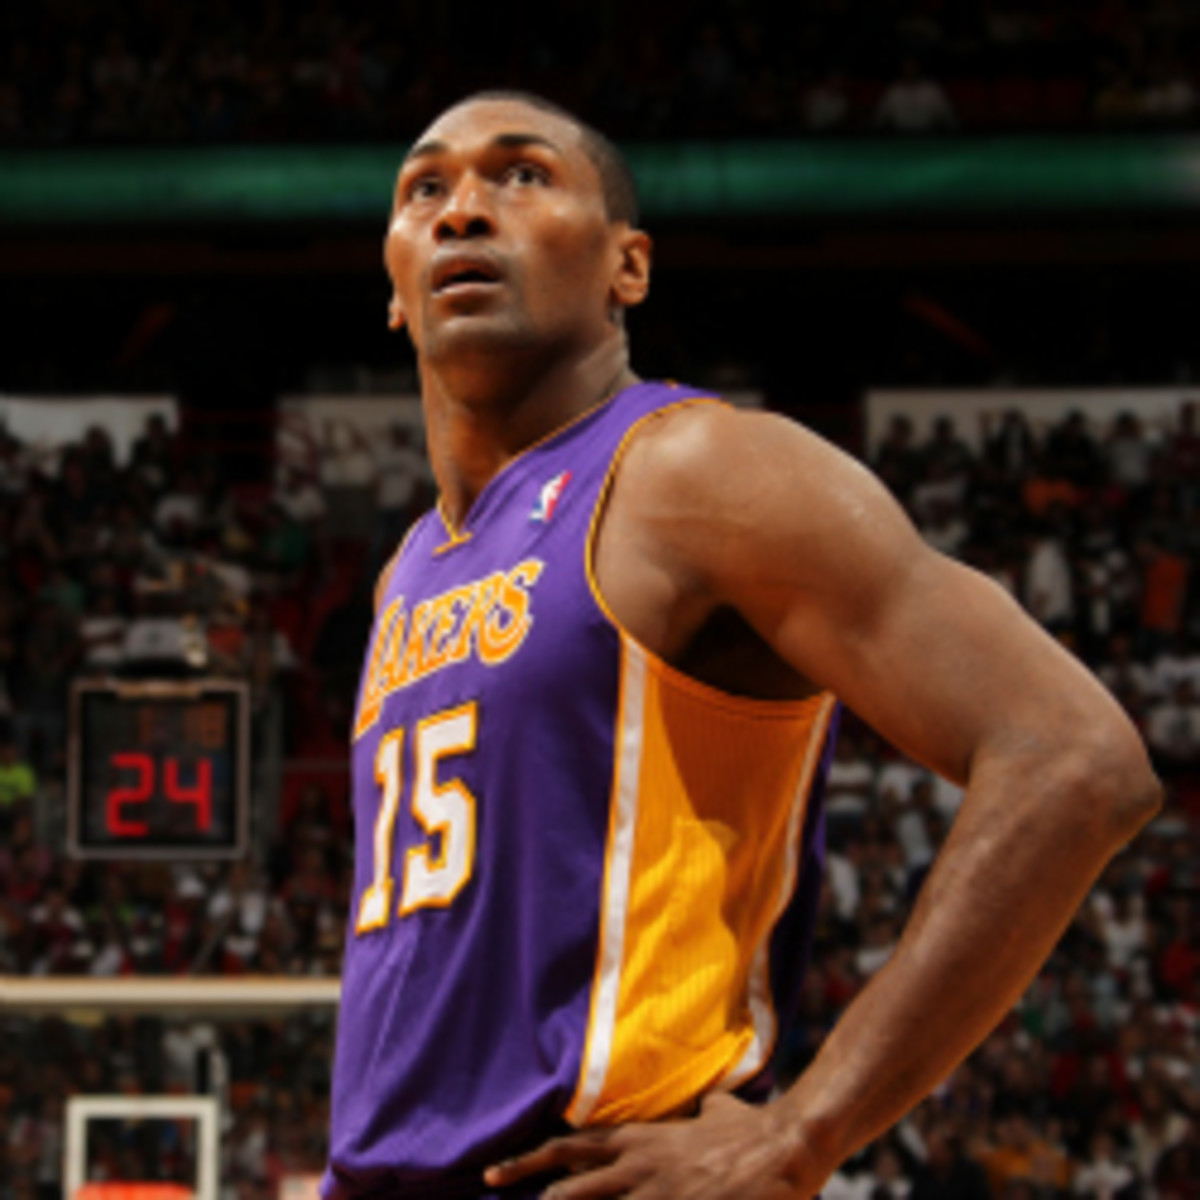 Metta World Peace had police swarm his condo when actors in his movie were rehearsing a scene with fake guns. (Issac Baldizon/Getty Images)